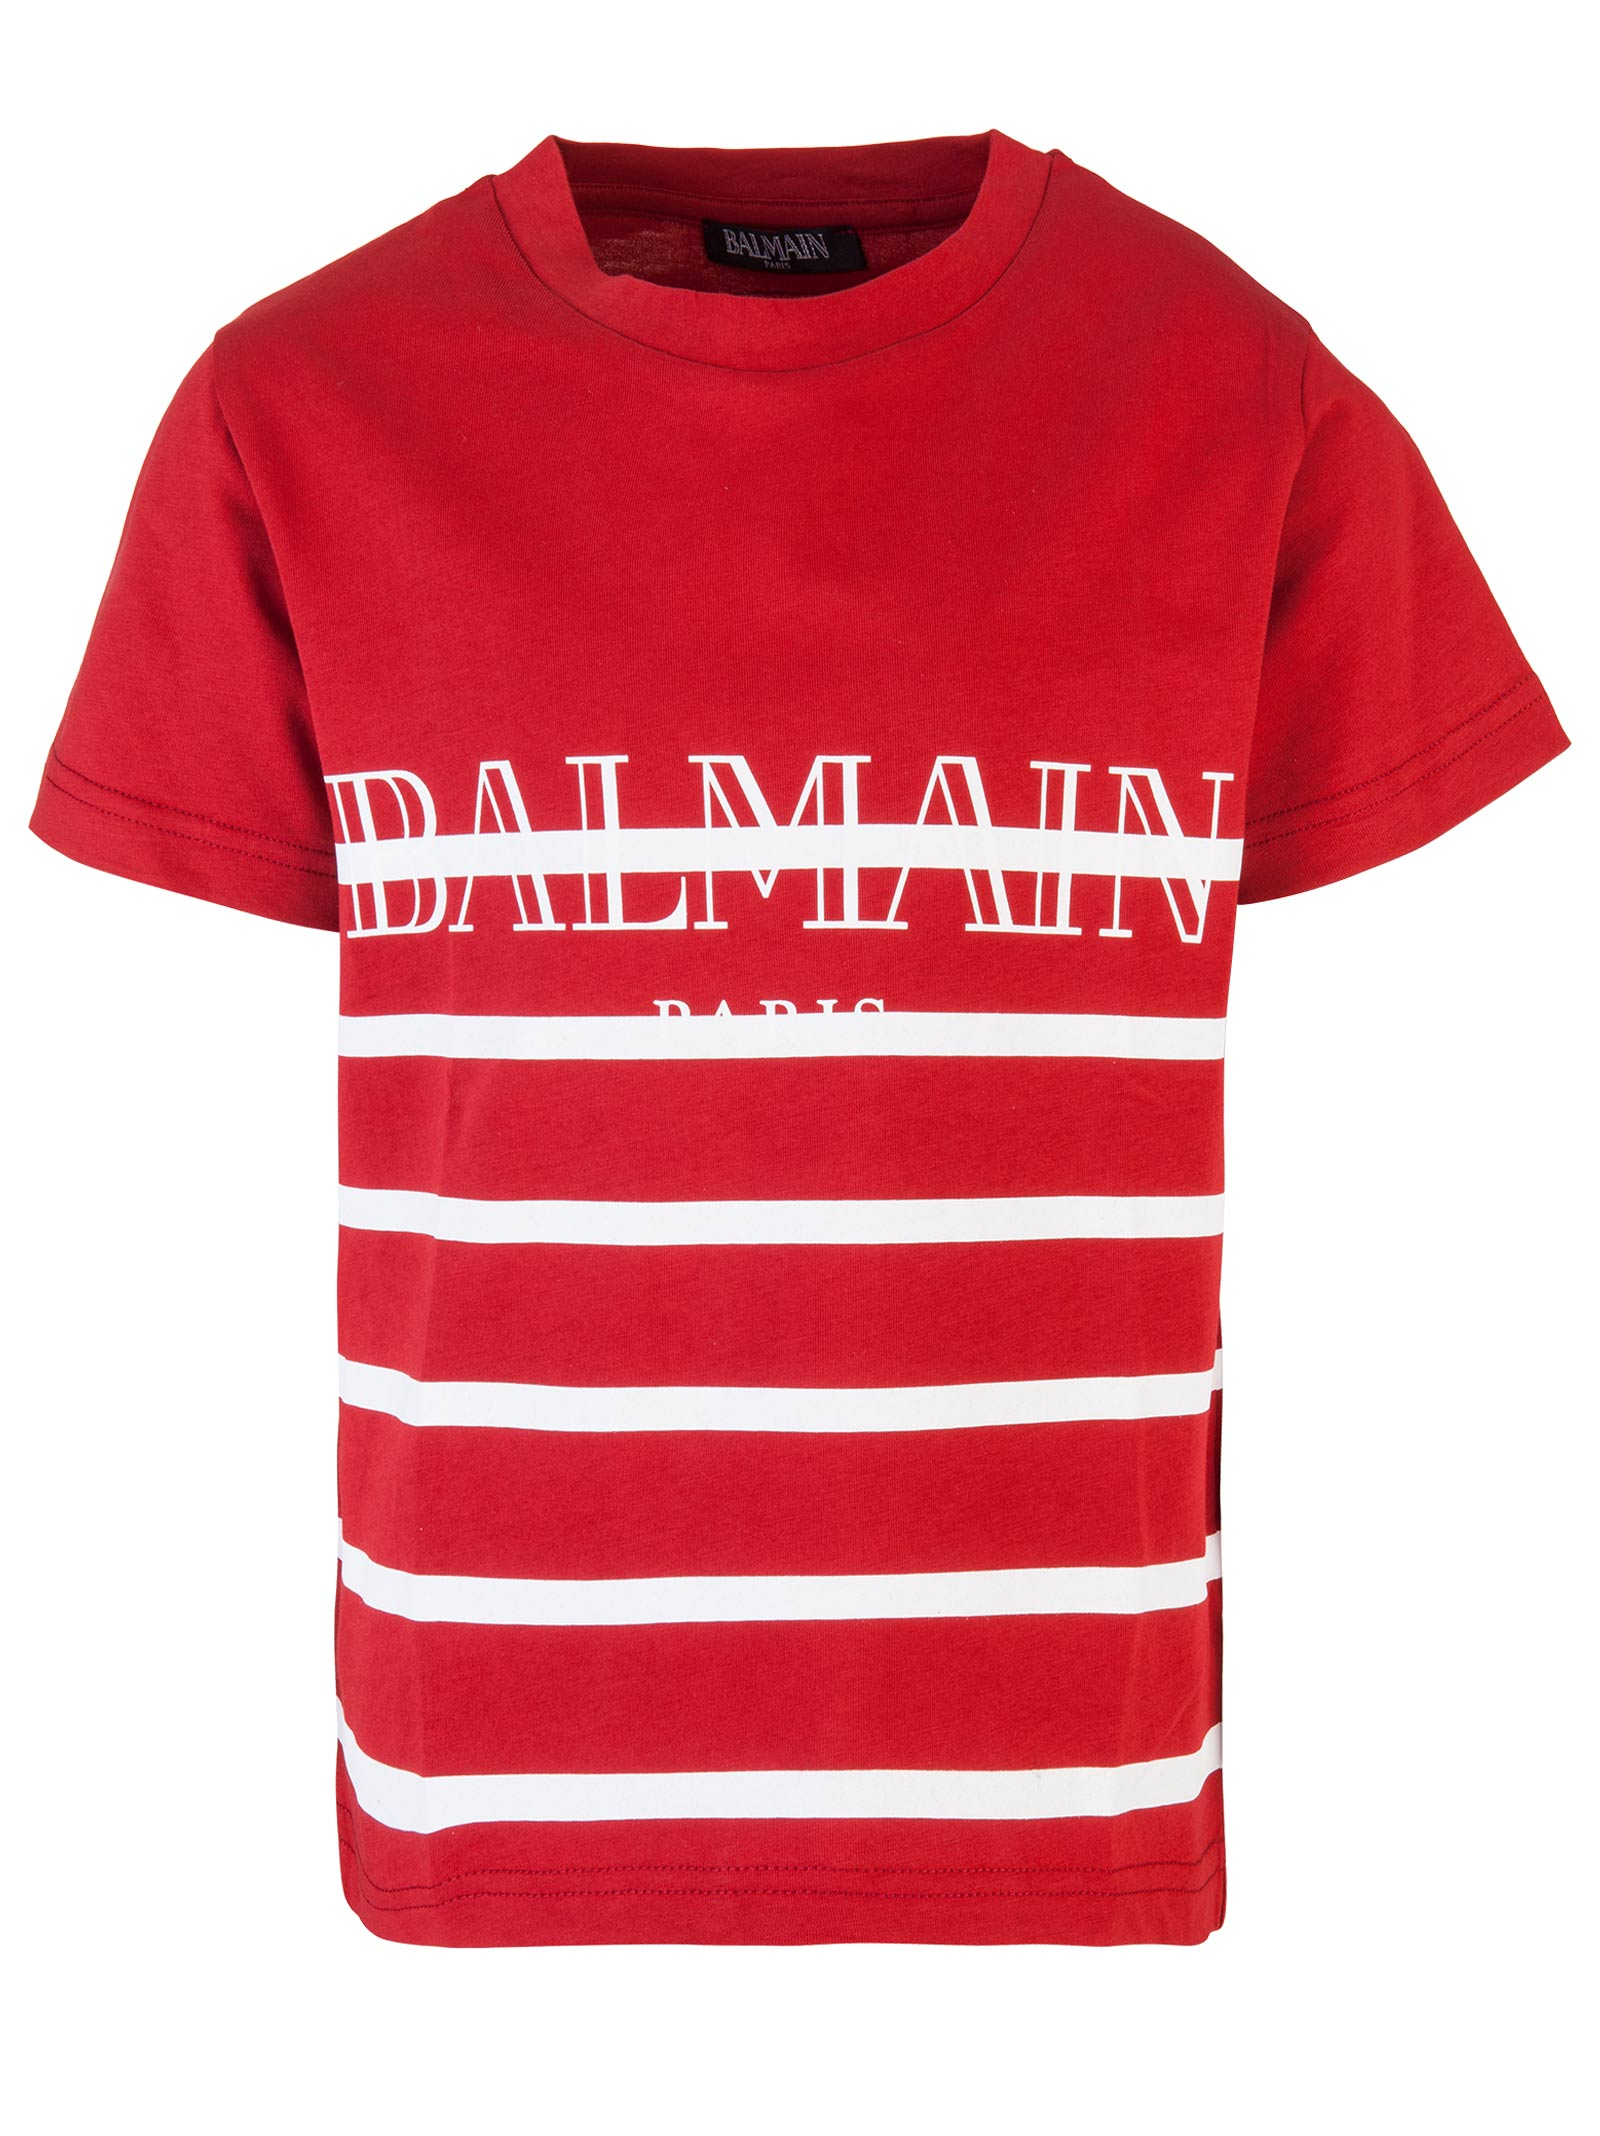 0c58fa499 BALMAIN PARIS KIDS T-shirt - BALMAIN PARIS KIDS - Michele Franzese Moda